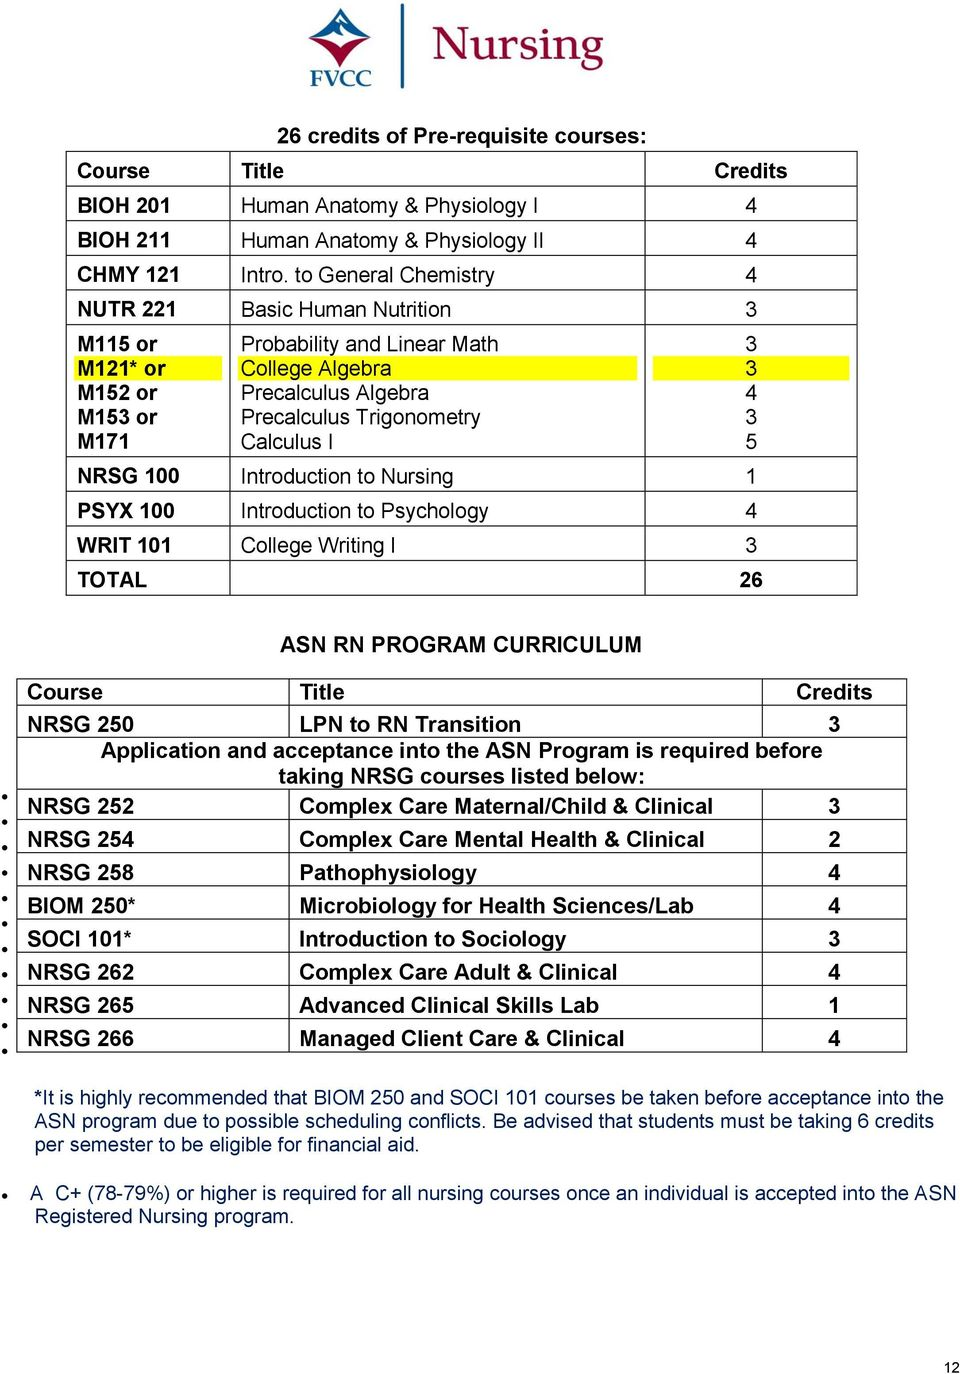 100 Introduction to Nursing 1 PSYX 100 Introduction to Psychology 4 WRIT 101 College Writing I 3 TOTAL 26 3 3 4 3 5 ASN RN PROGRAM CURRICULUM Course Title Credits NRSG 250 LPN to RN Transition 3